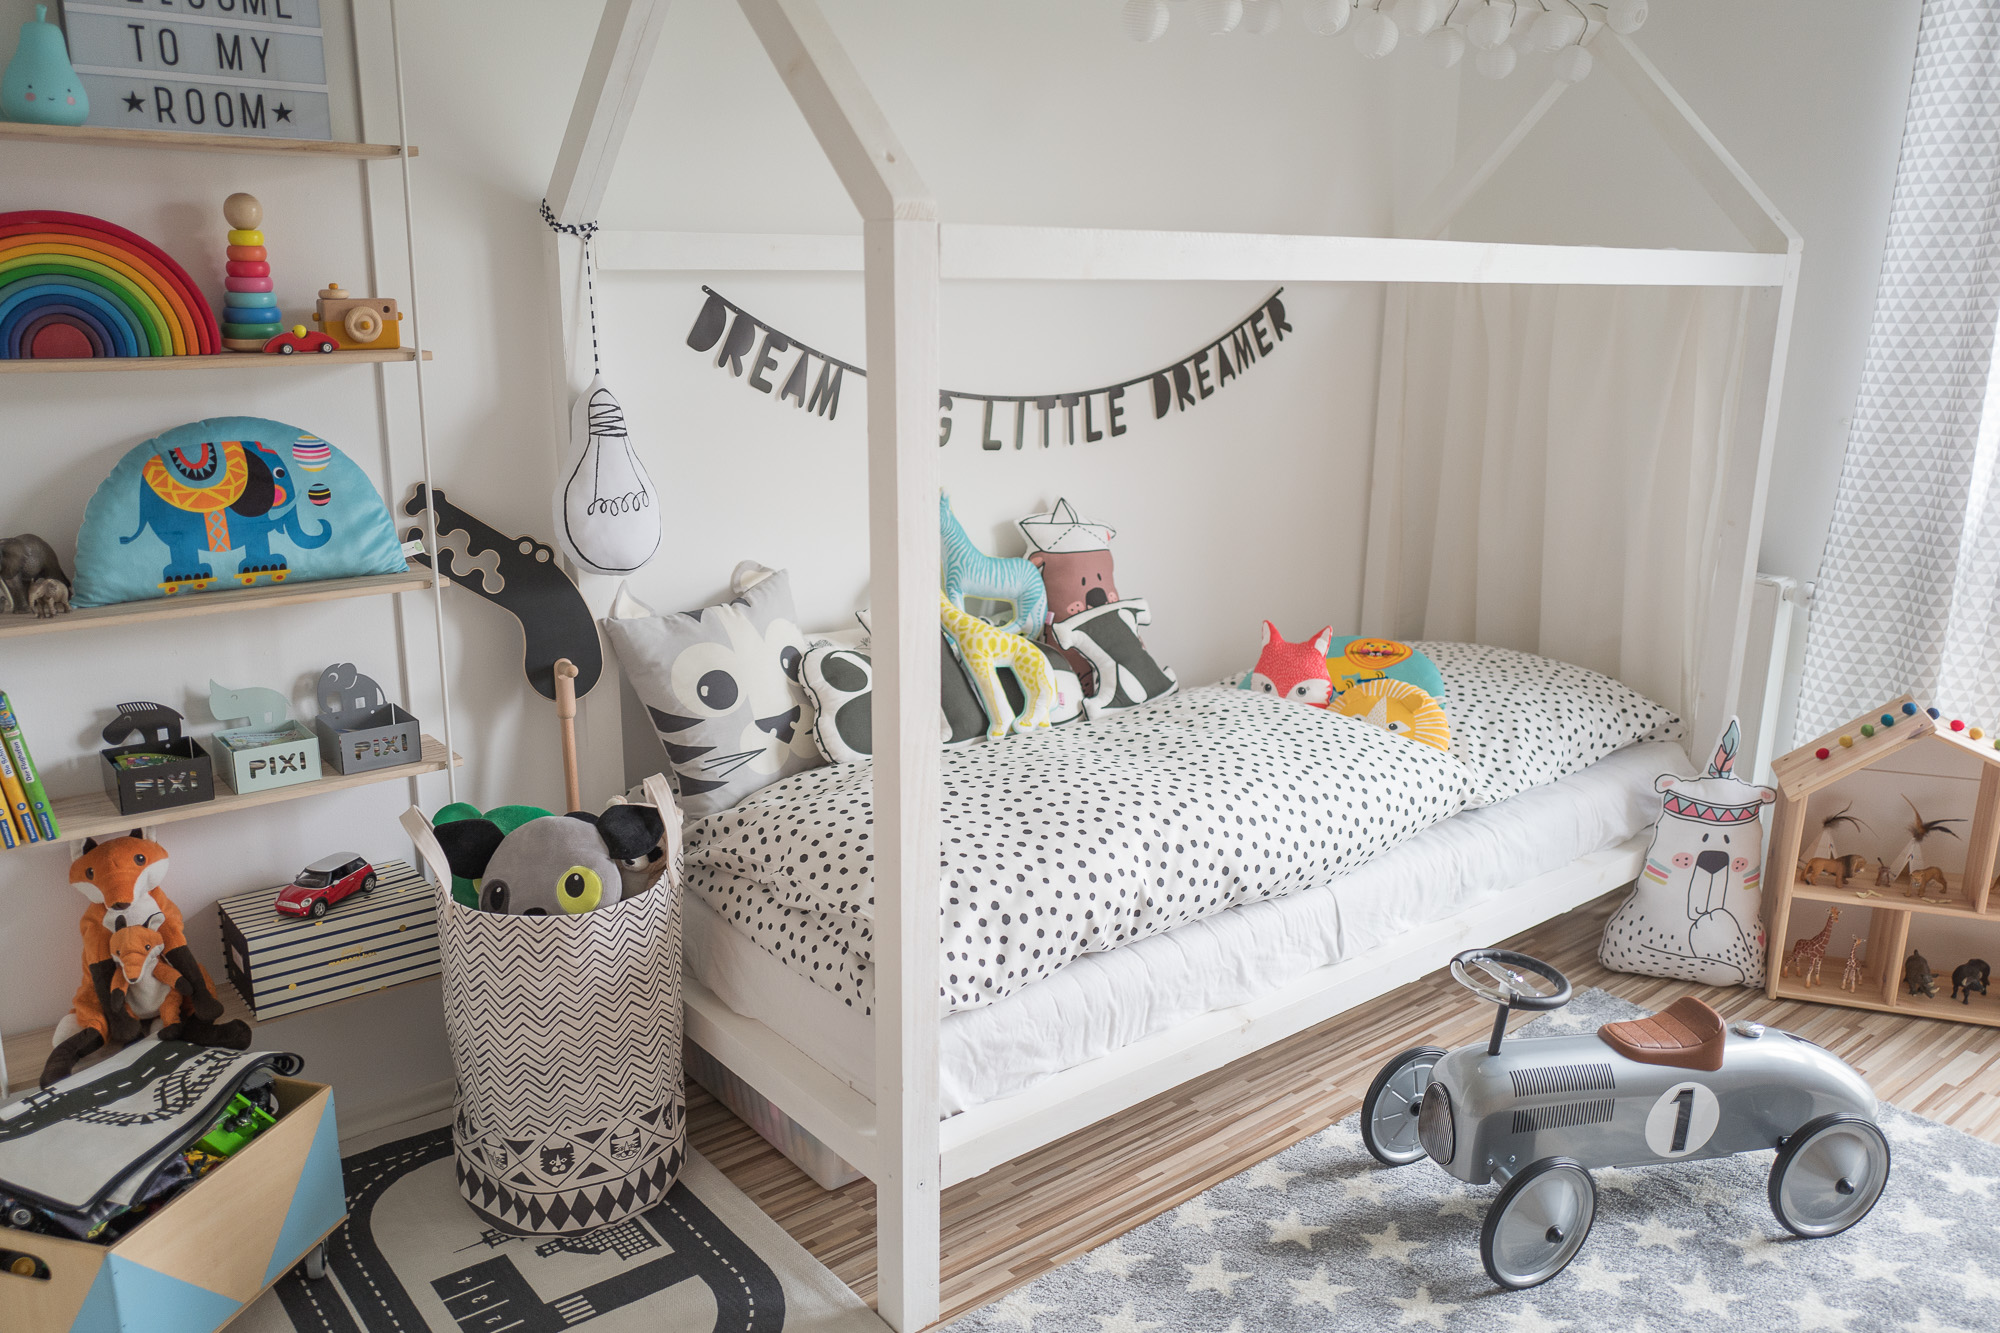 kinderzimmer aufr umen leicht gemacht mamigurumi. Black Bedroom Furniture Sets. Home Design Ideas